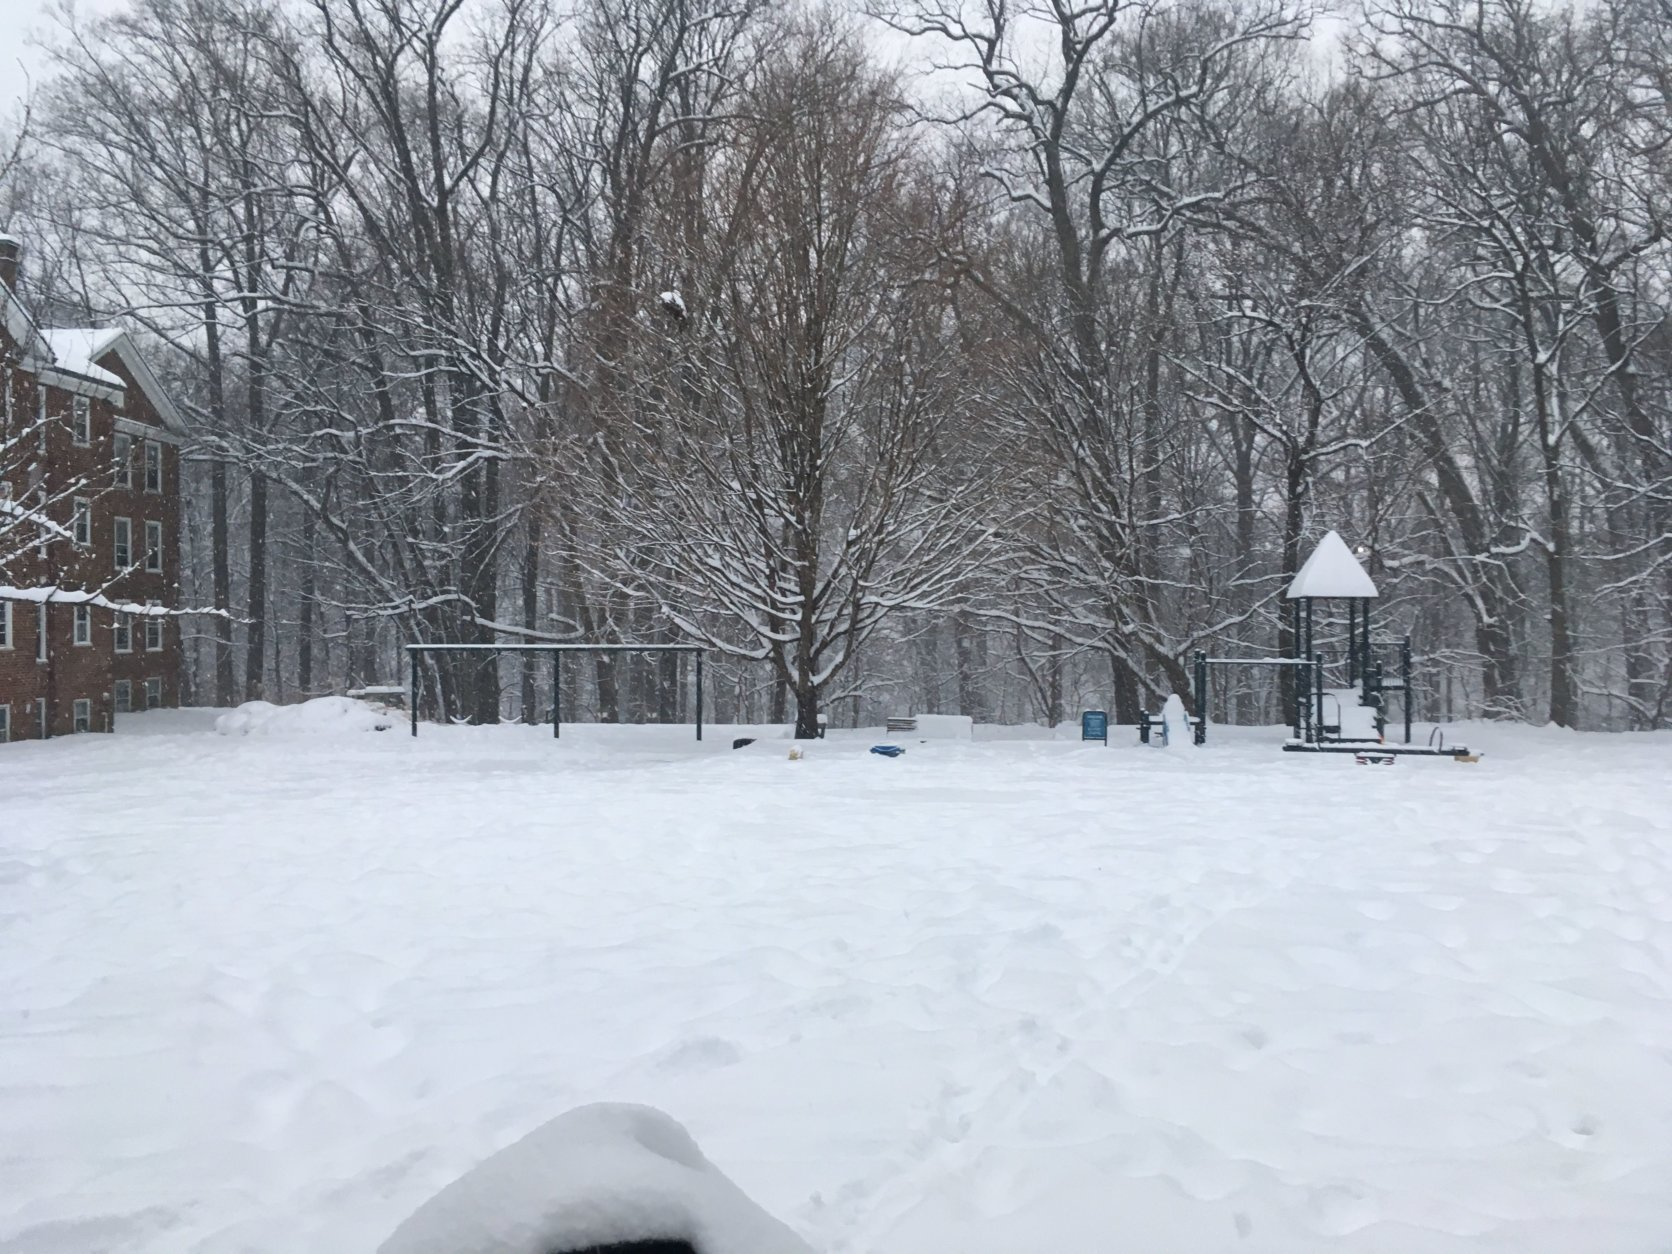 Snow falls amid a playground in McLean Gardens in D.C. (WTOP/Rick Massimo)